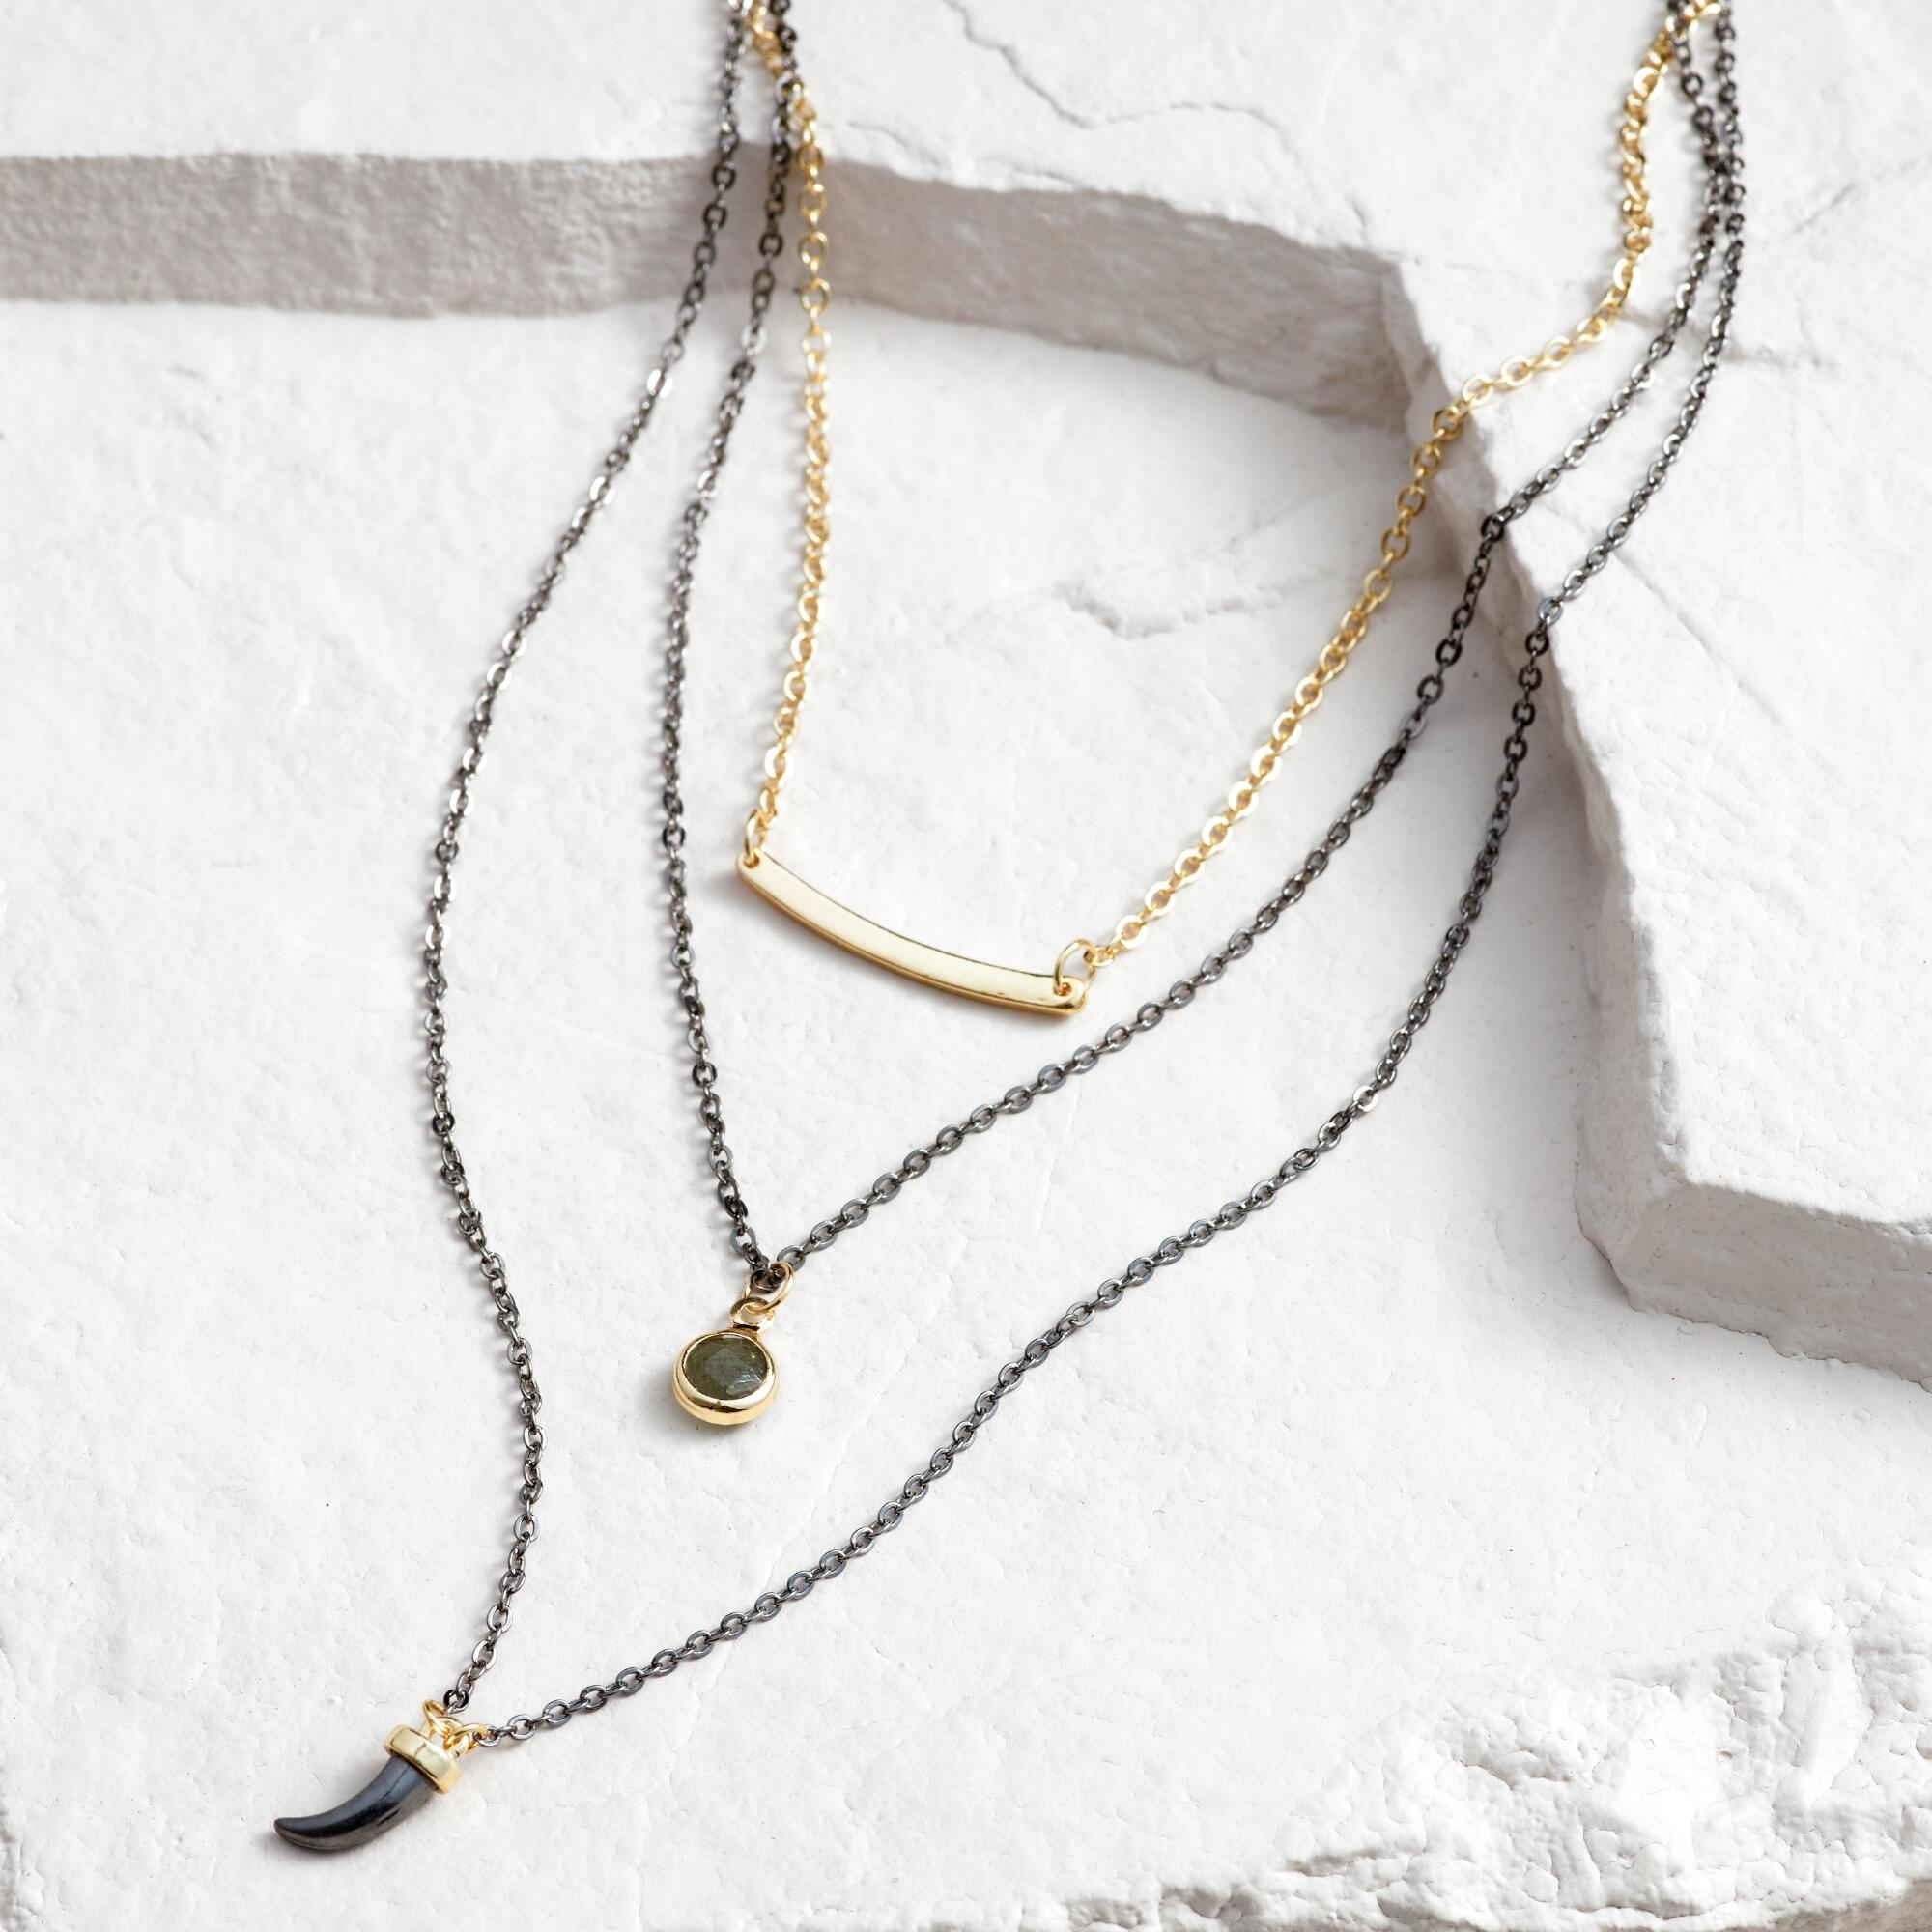 Gold Black, Labradorite and Horn Necklaces Set of 3